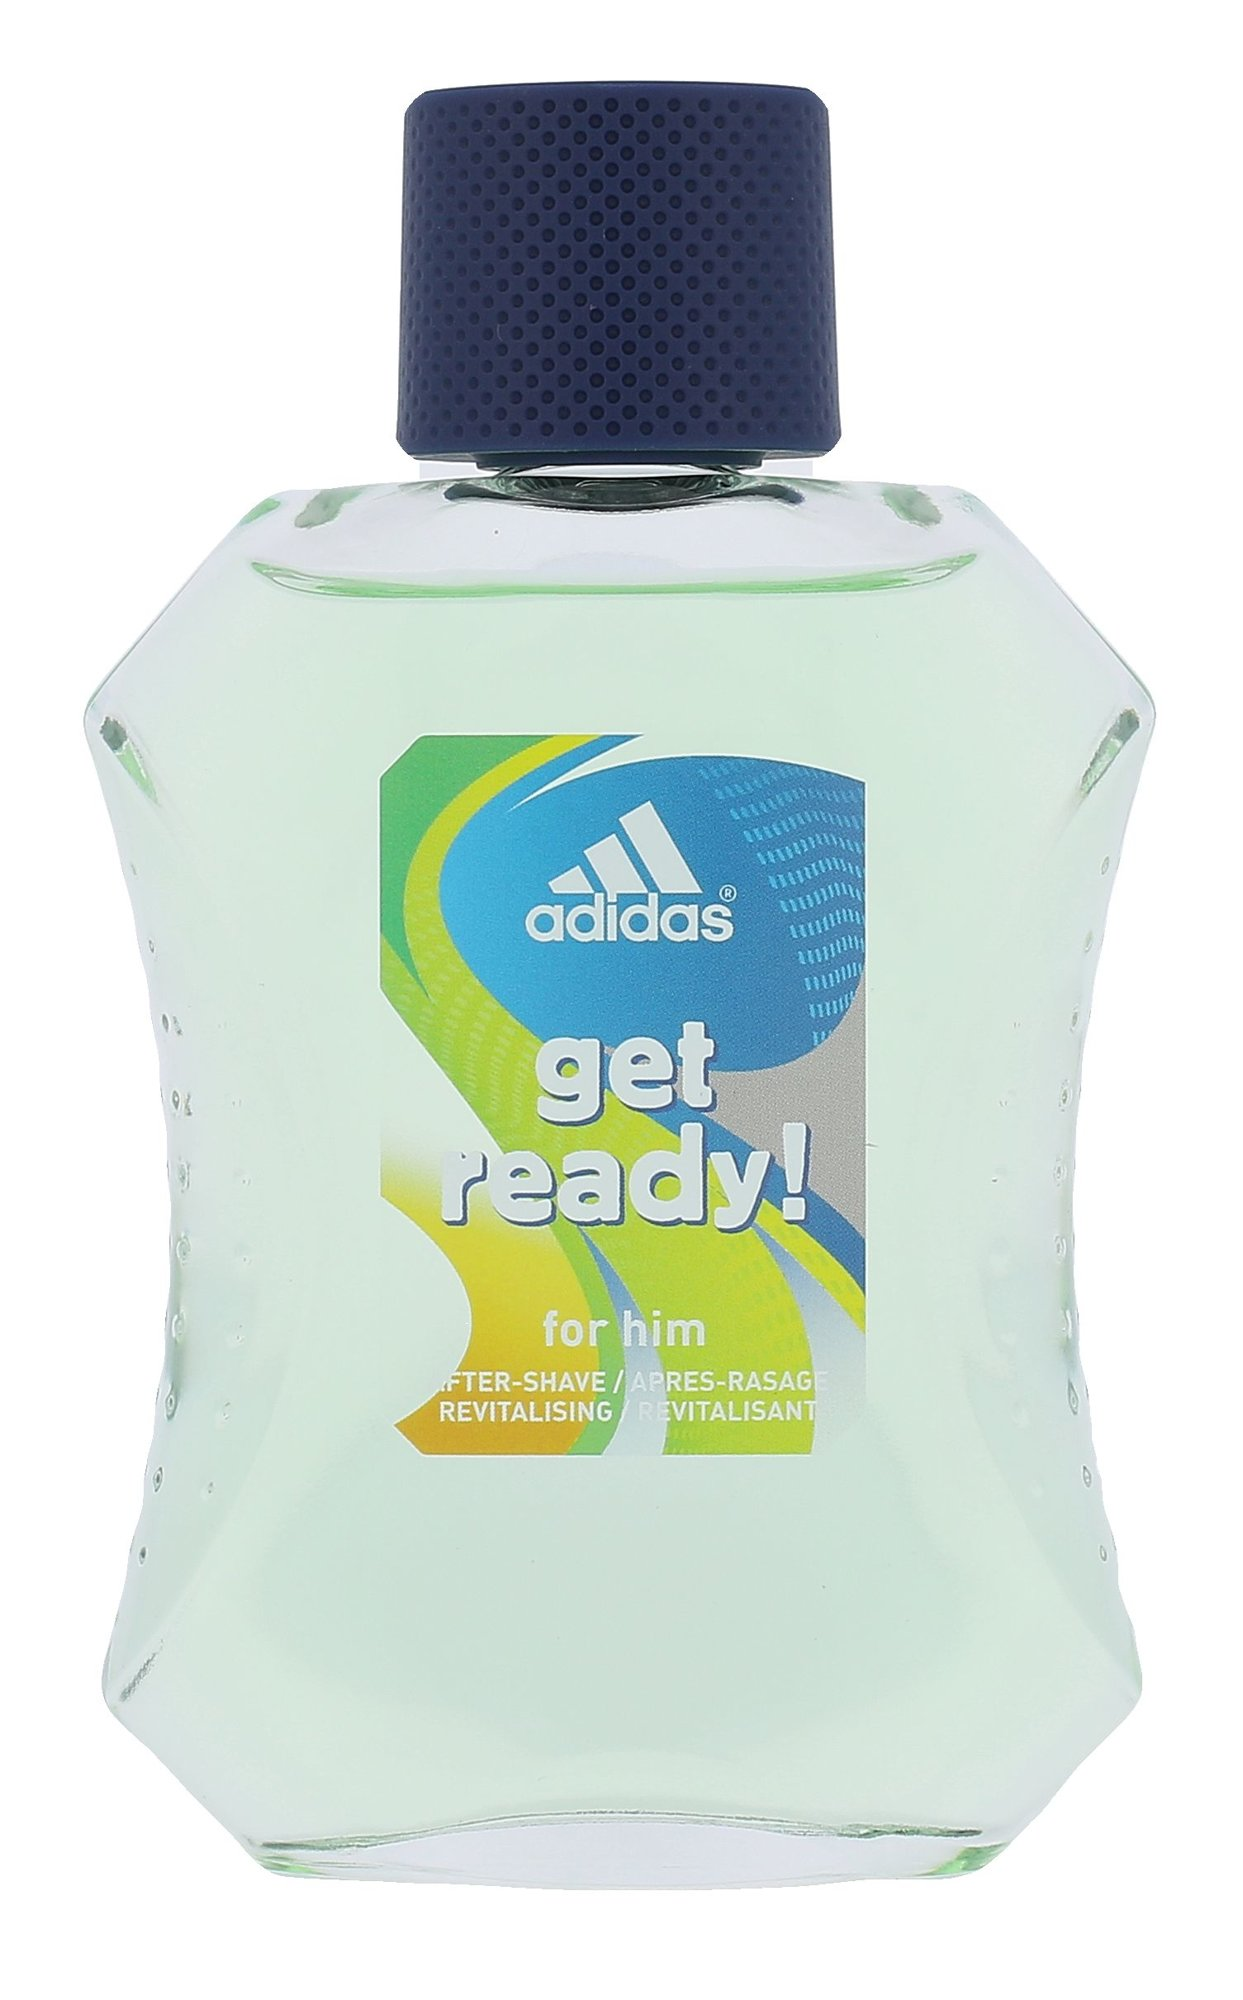 Adidas Get Ready! For Him Aftershave 100ml